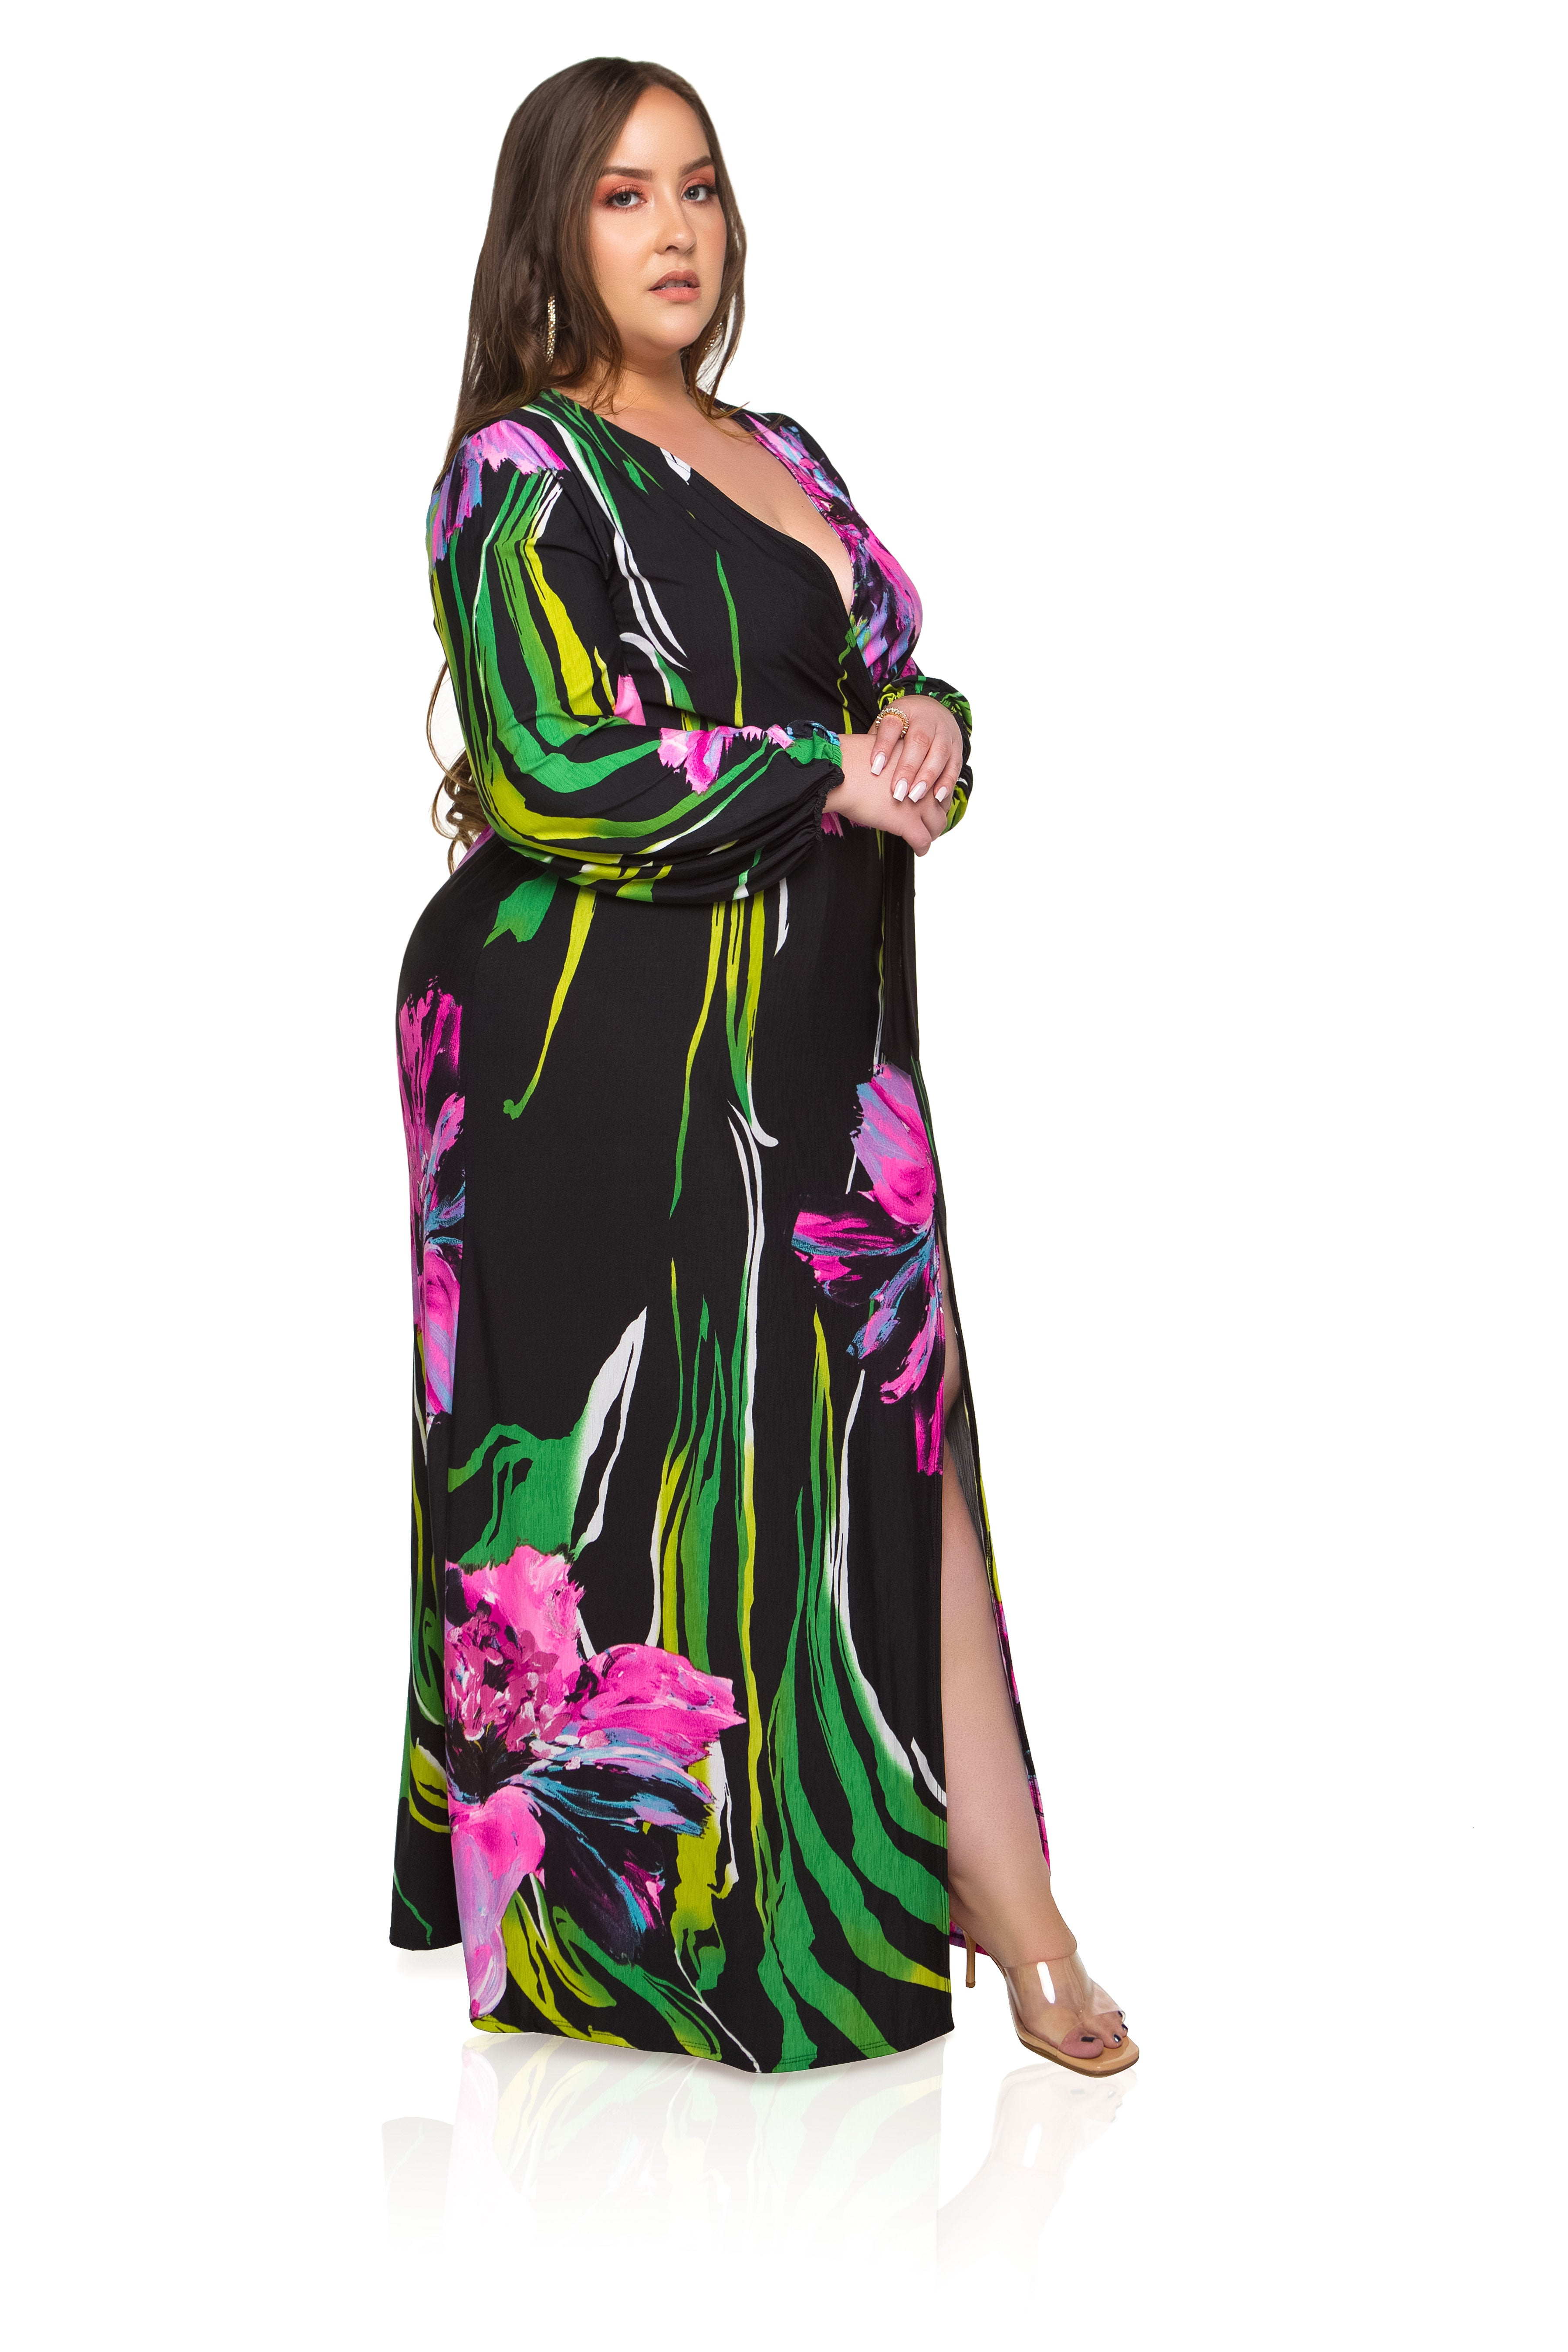 Iris Floral Maxi Dress - Black - ShopLuvB